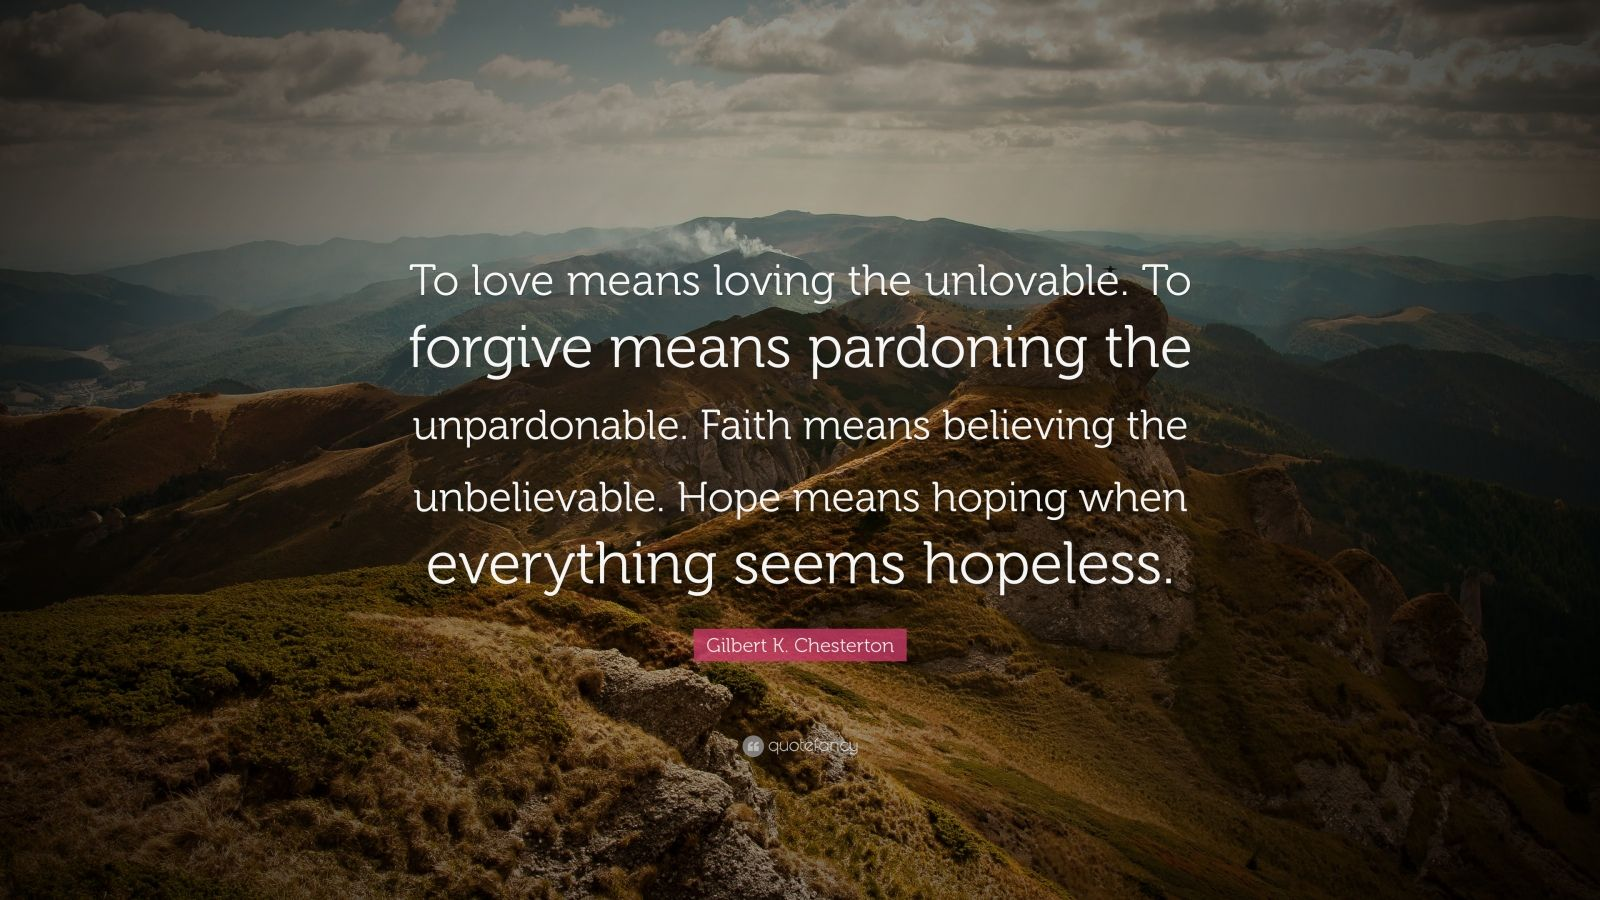 "Gilbert K. Chesterton Quote: ""To love means loving the unlovable. To forgive means pardoning the unpardonable. Faith means believing the unbelievable. Hope means hoping when everything seems hopeless."""